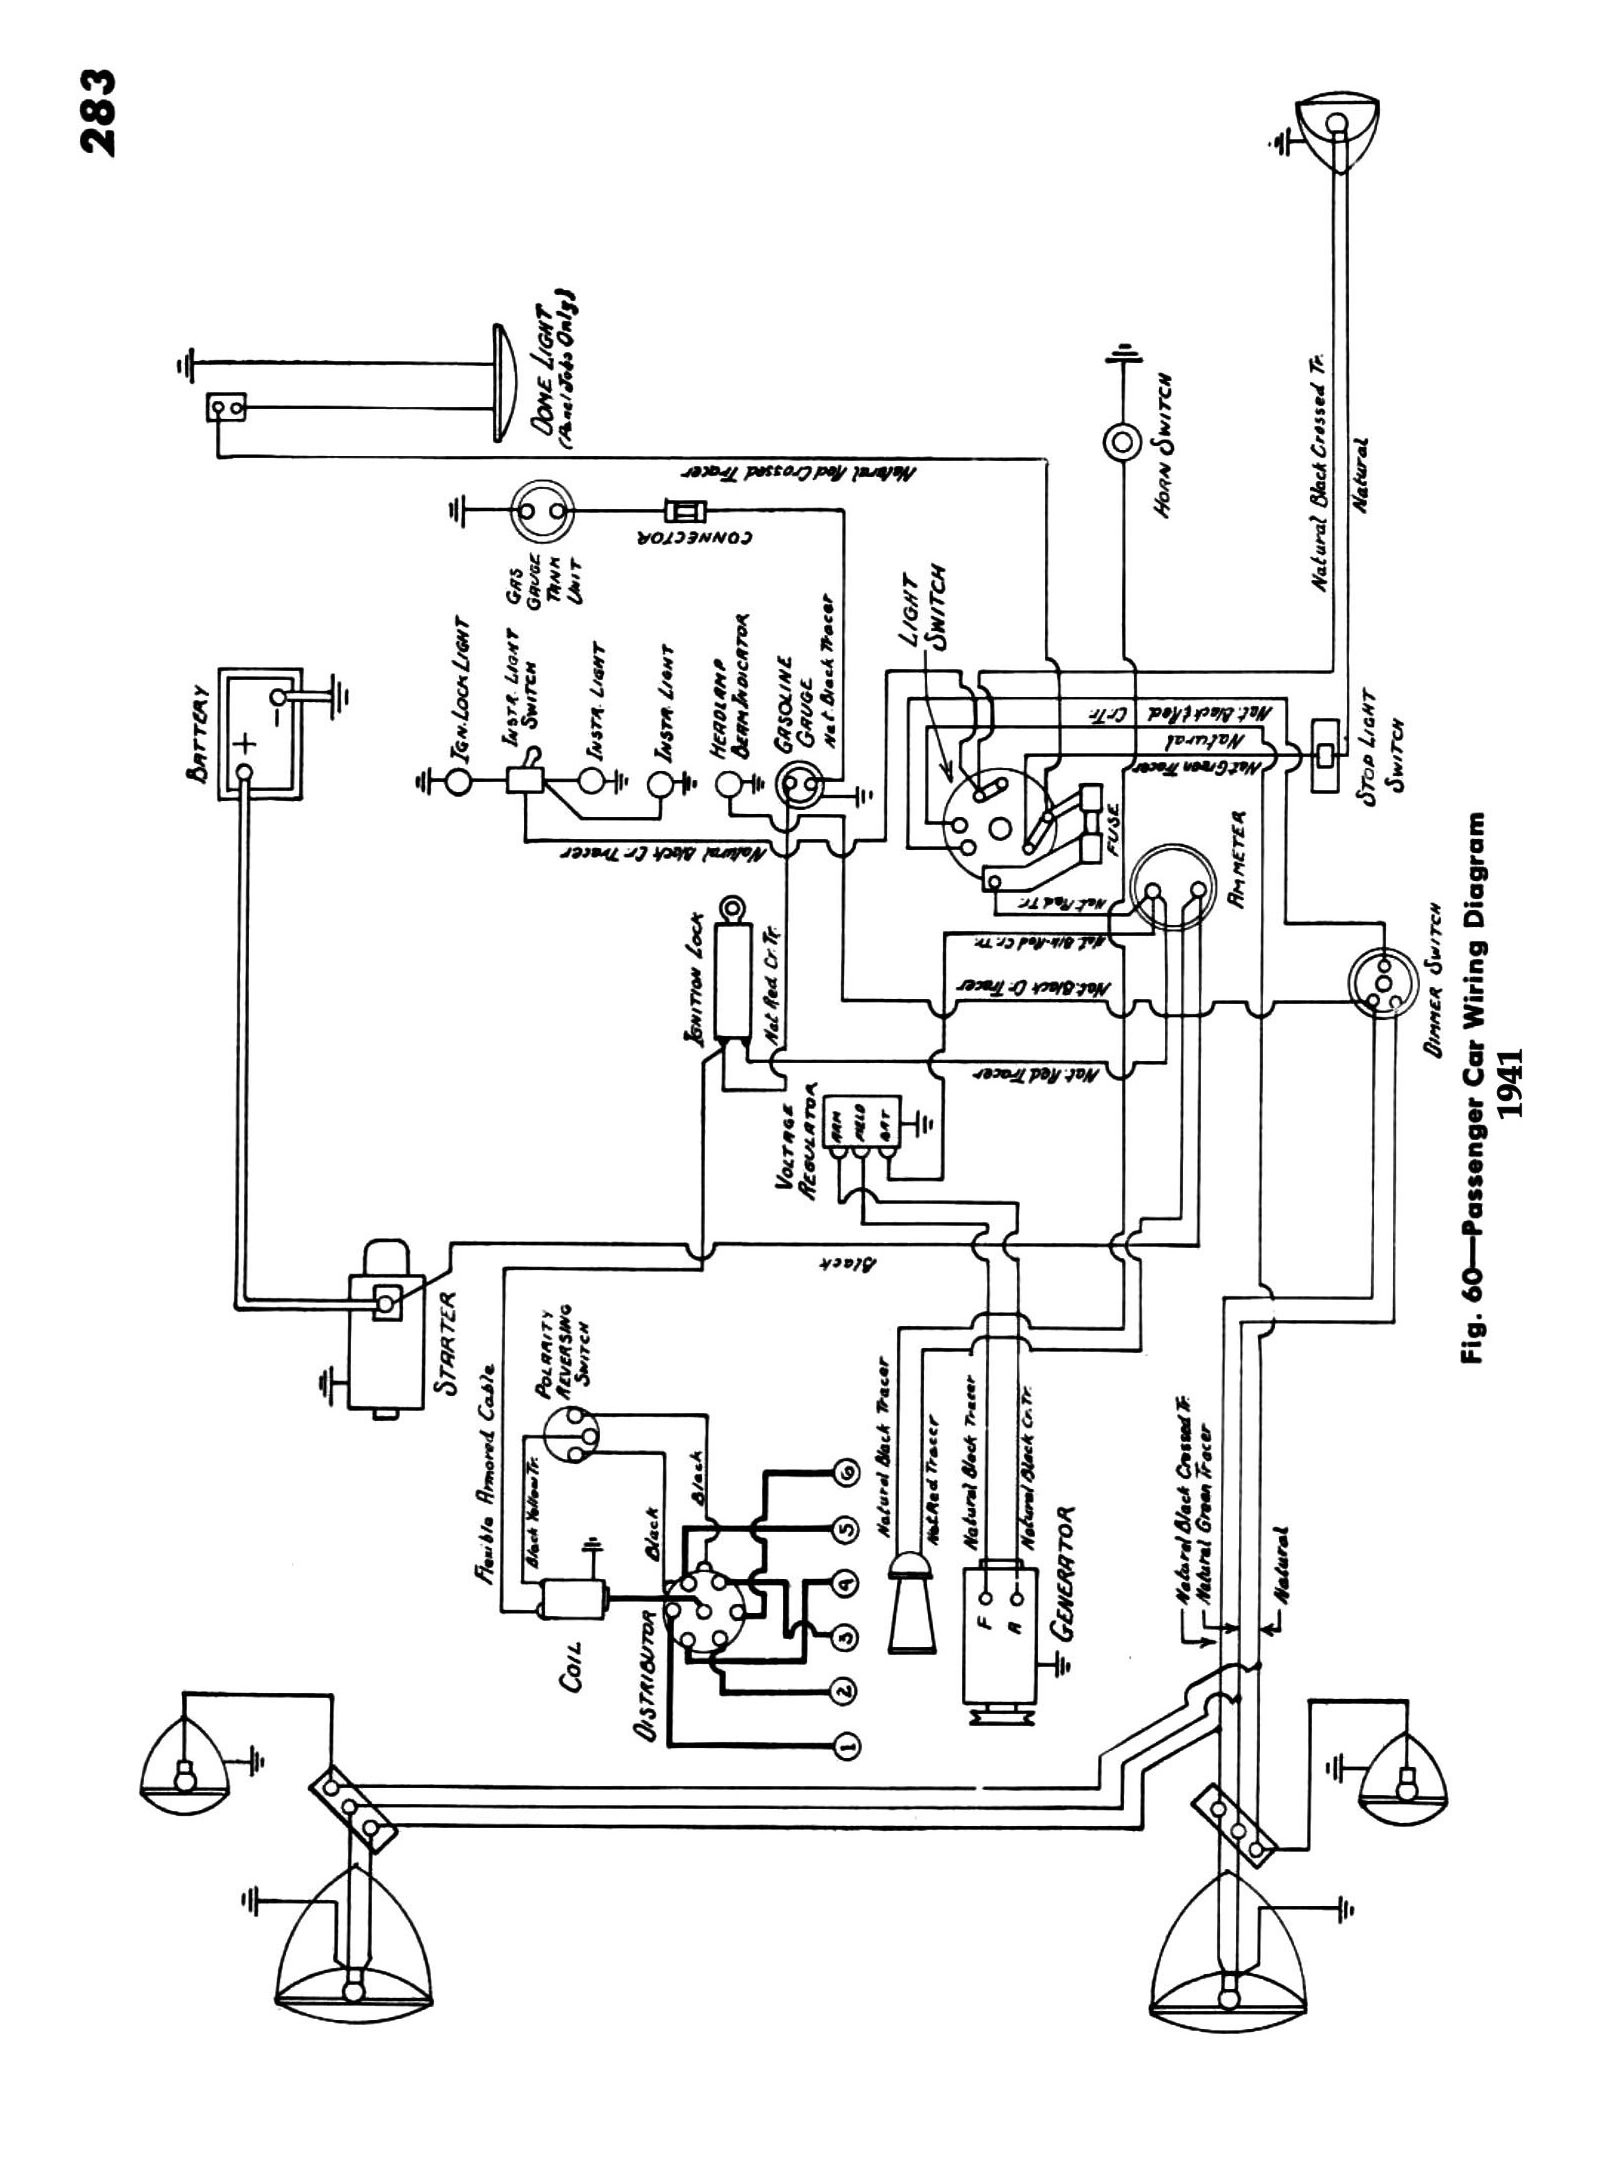 Engine Test Stand Wiring Diagram Hei Distributor 5.7 Hemi